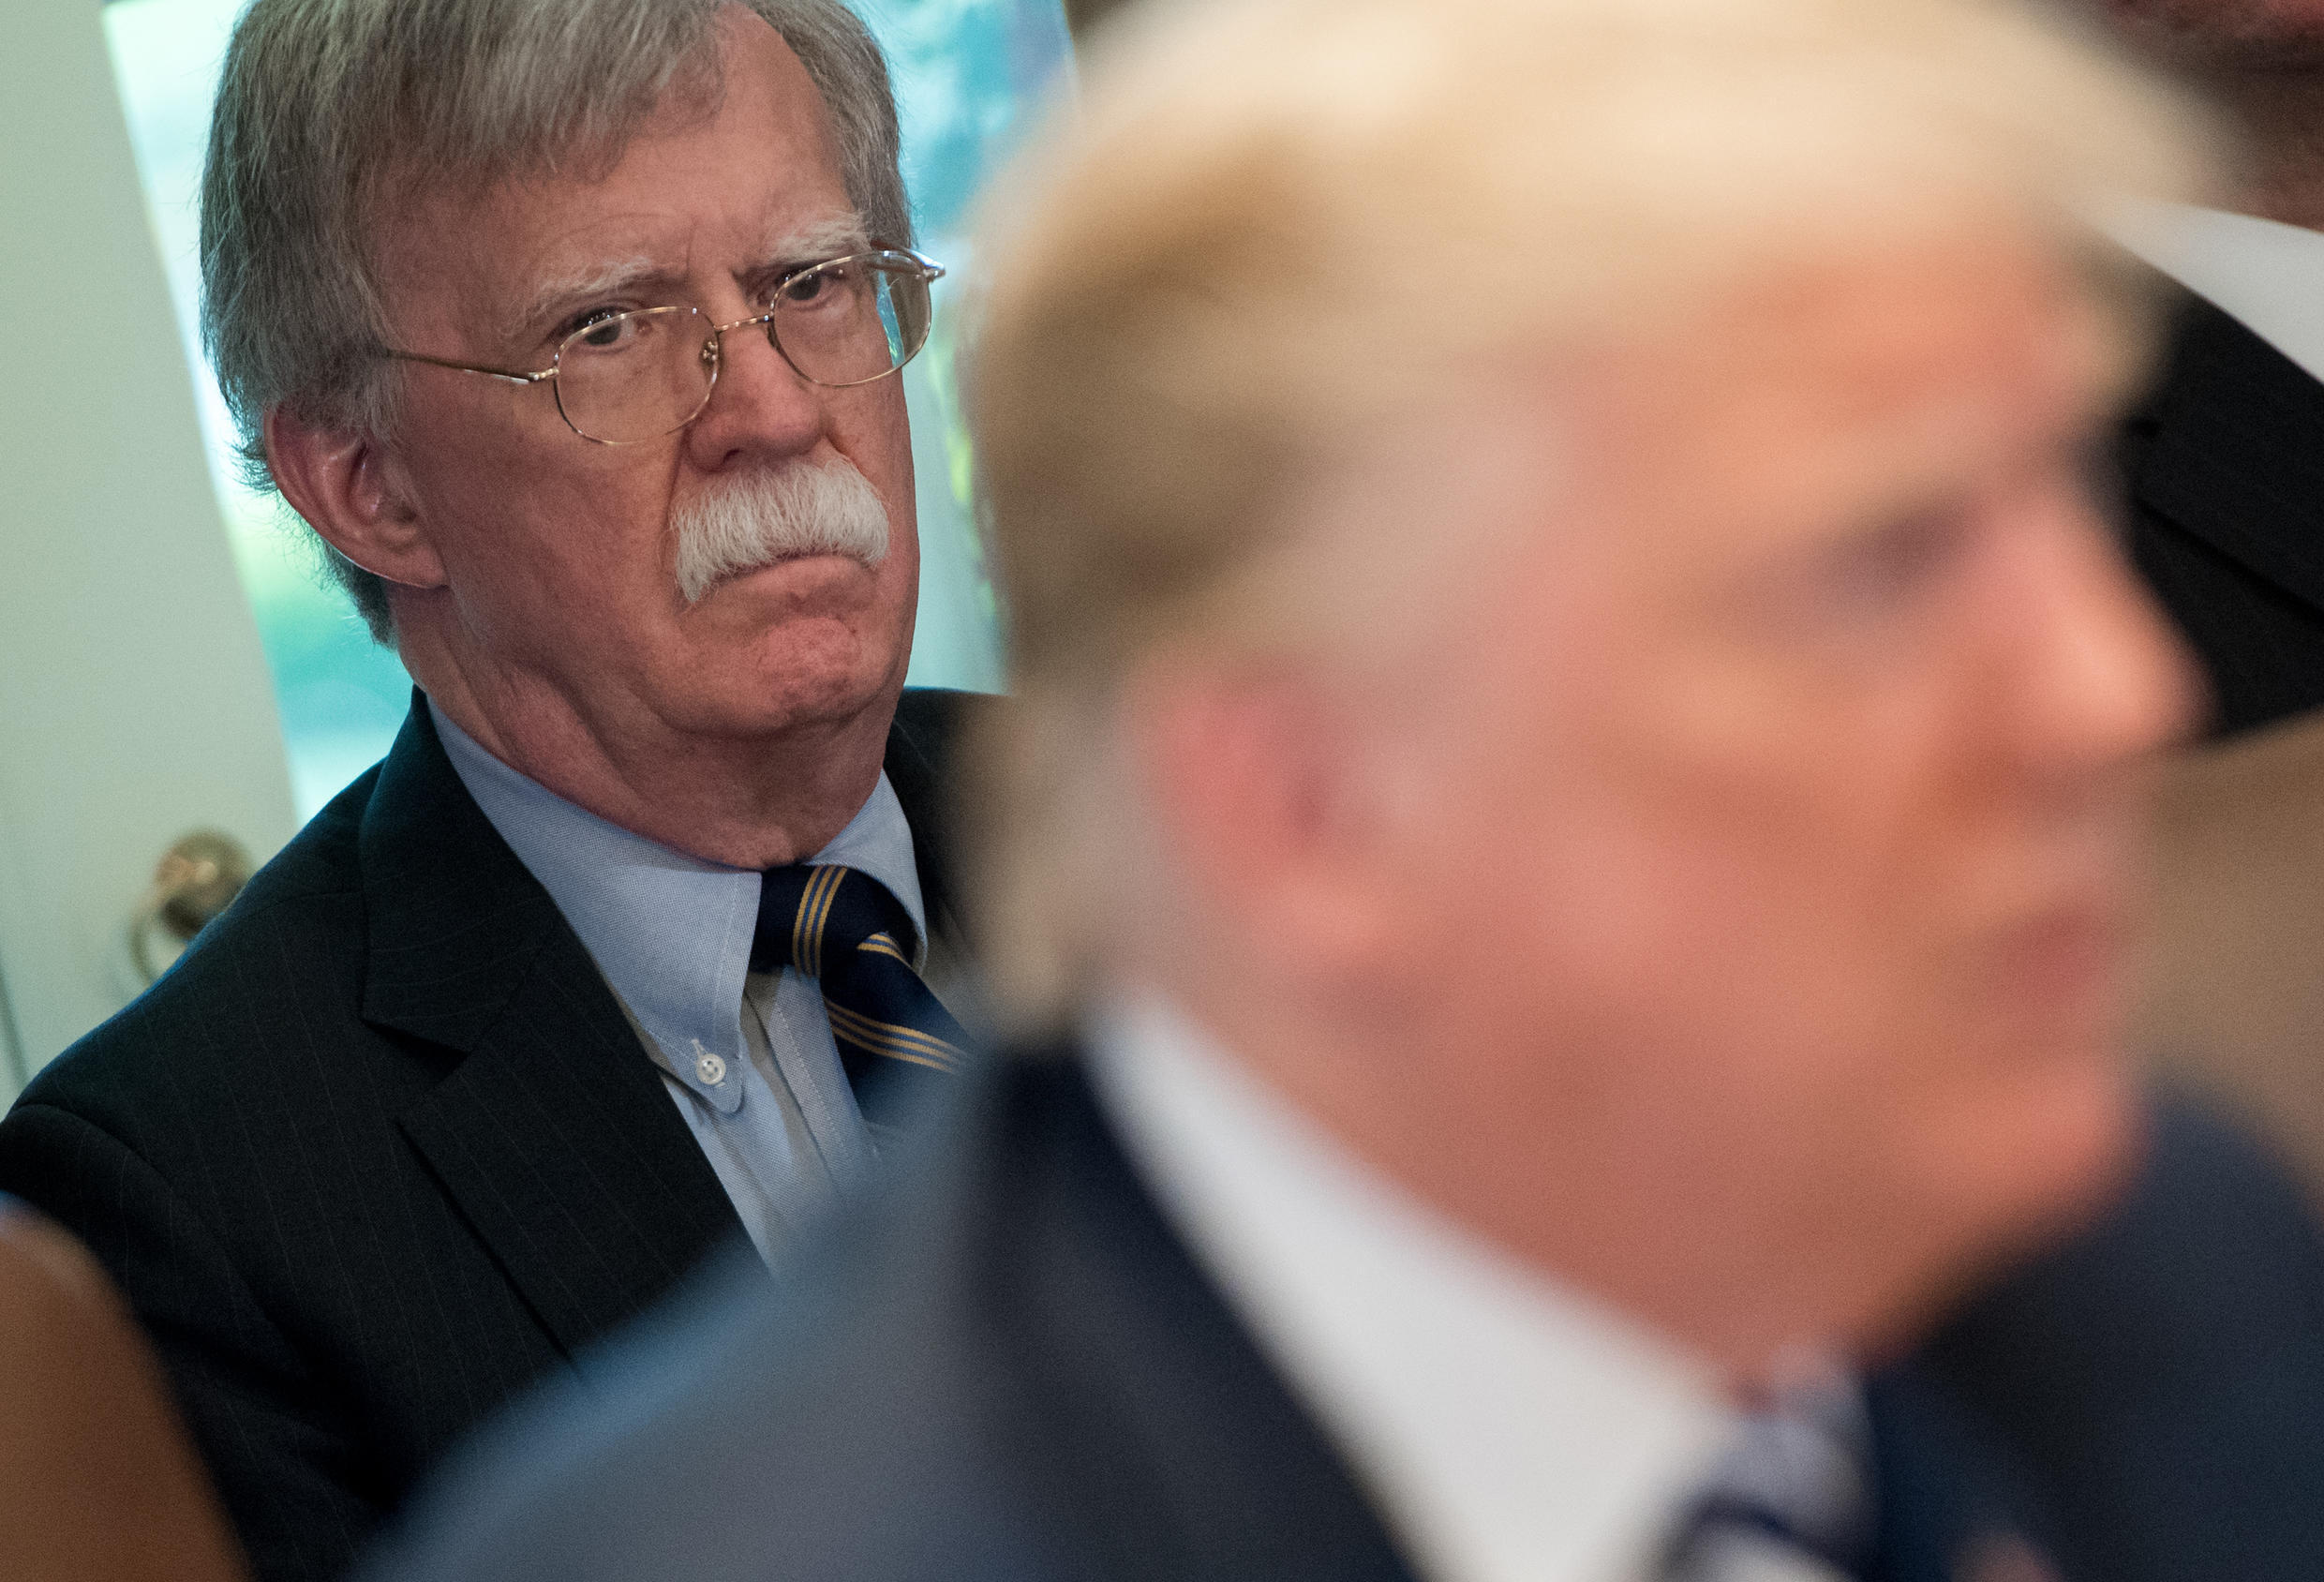 In this file photo, US President Donald Trump speaks alongside then national security adviser John Bolton (L) during a cabinet meeting in the White House in Washington, DC on May 9, 2018.